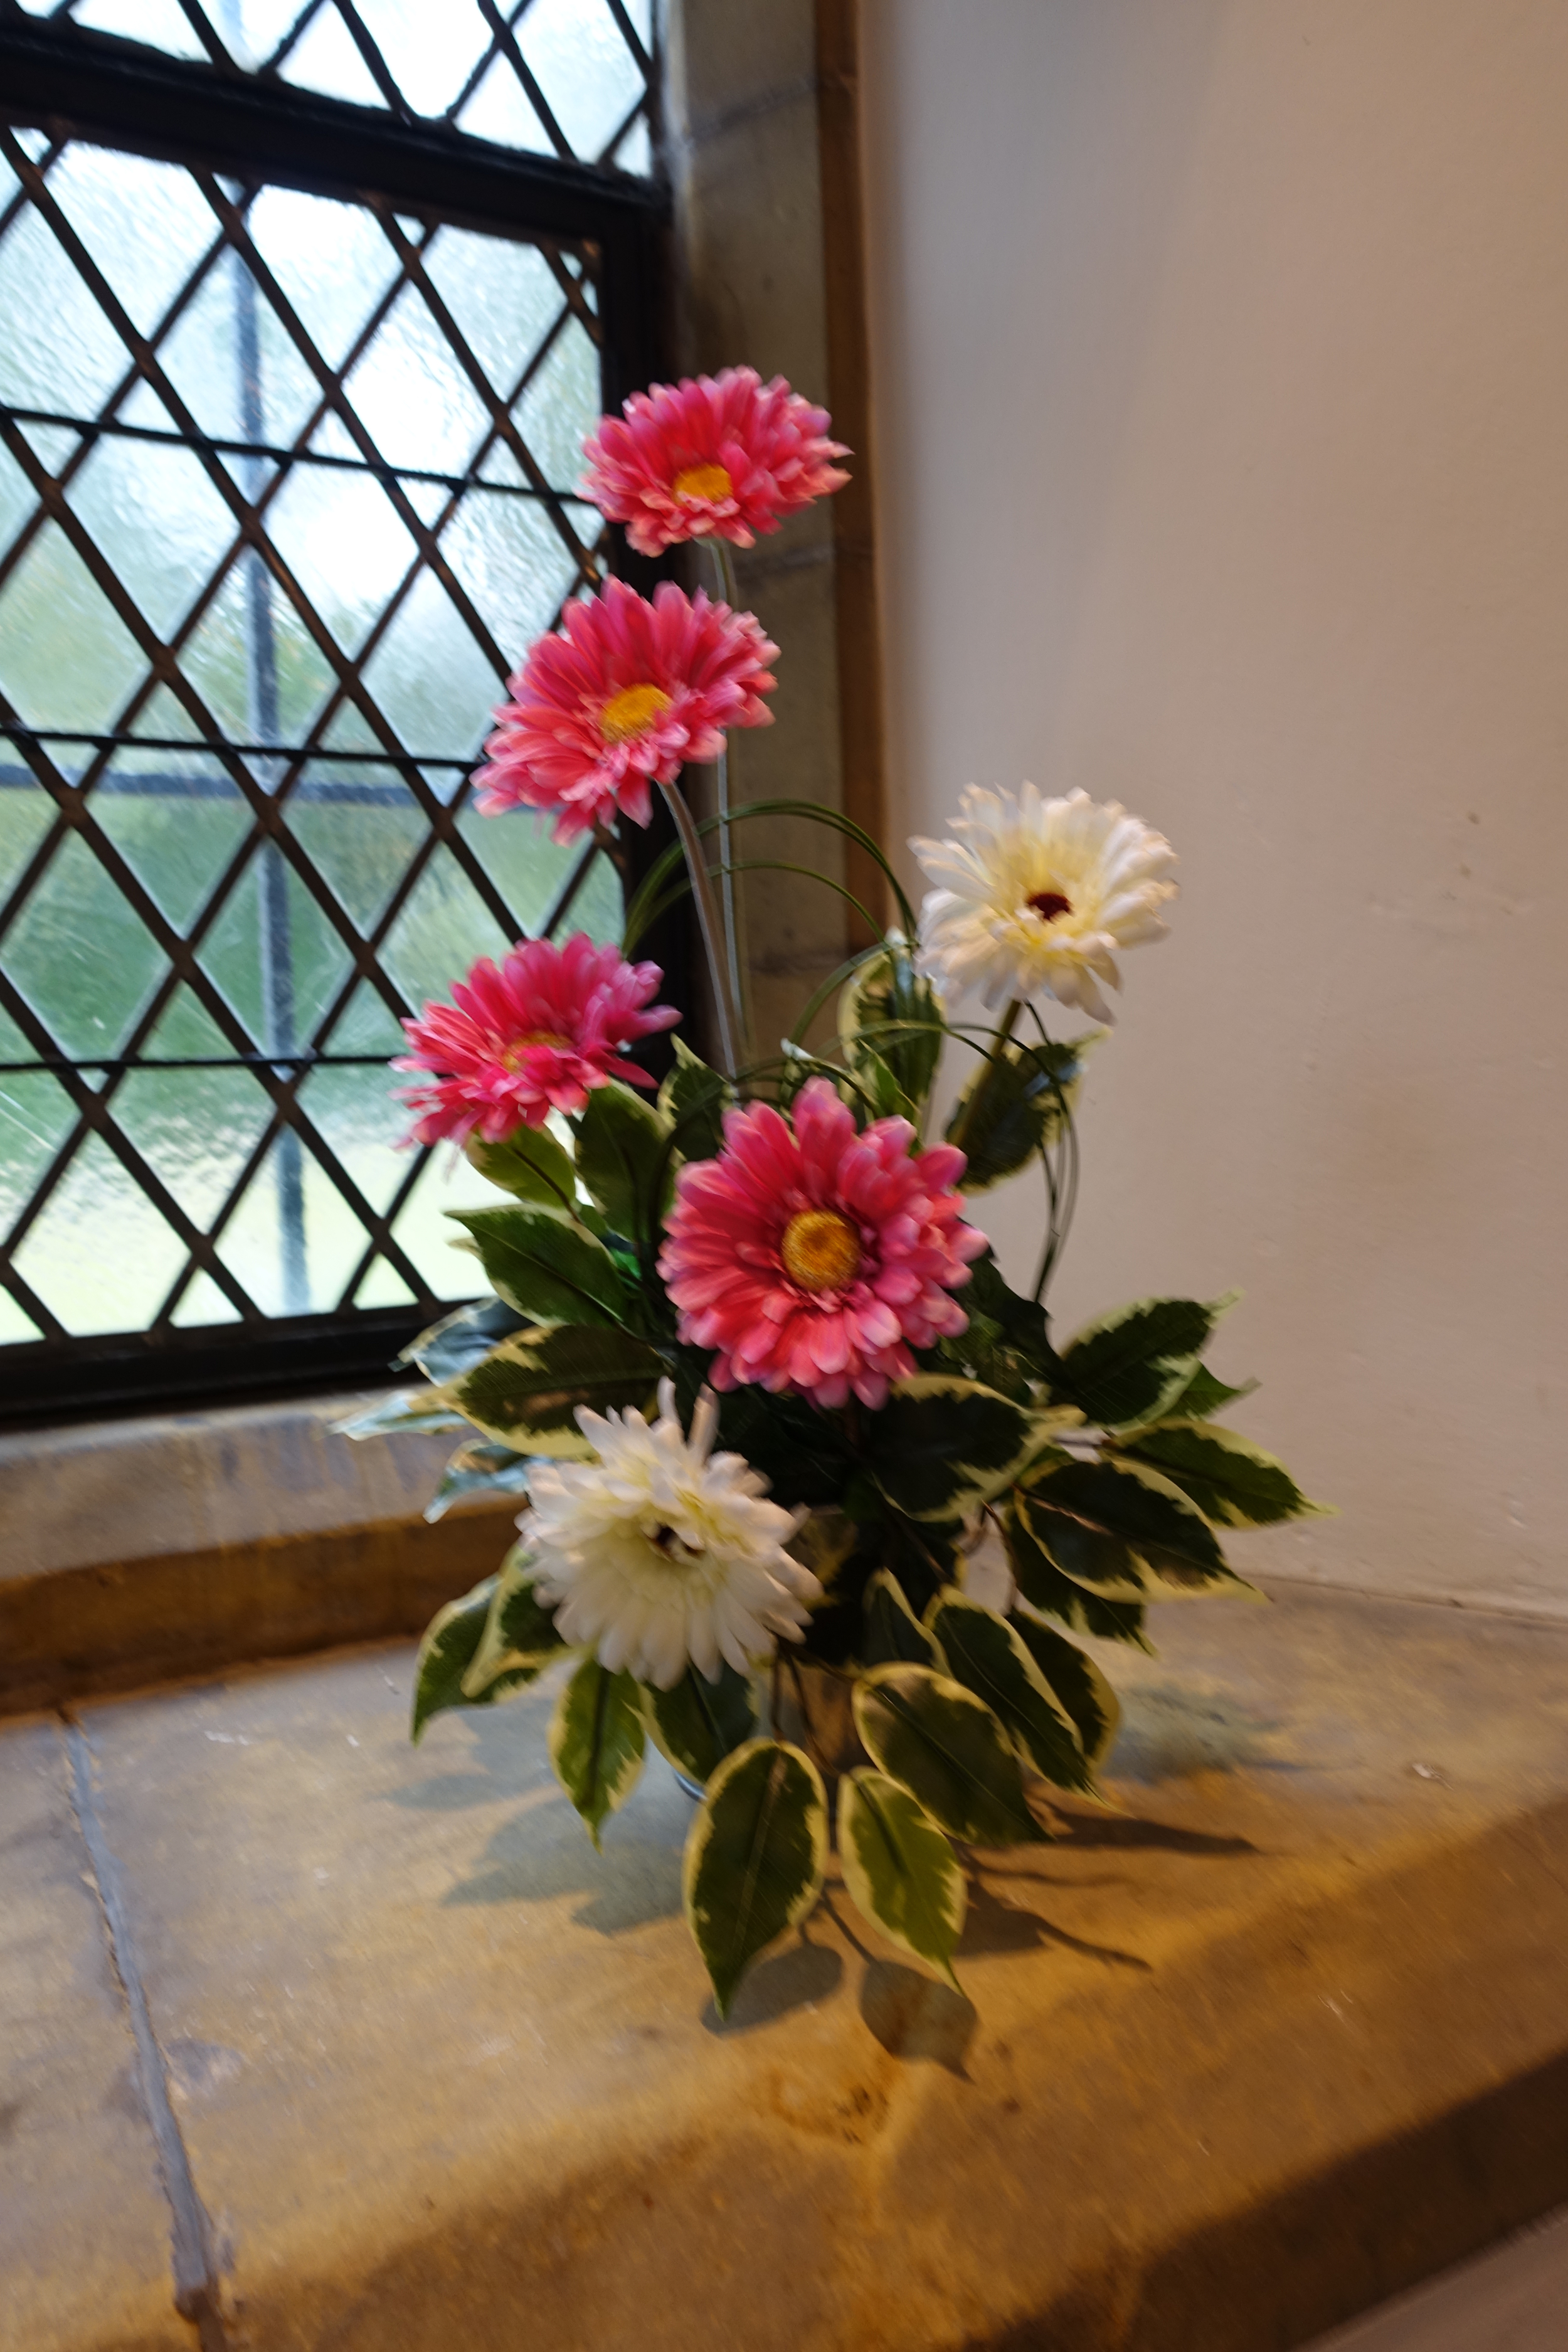 Church Window Display - With Hot Pink & Ivory Gerberas